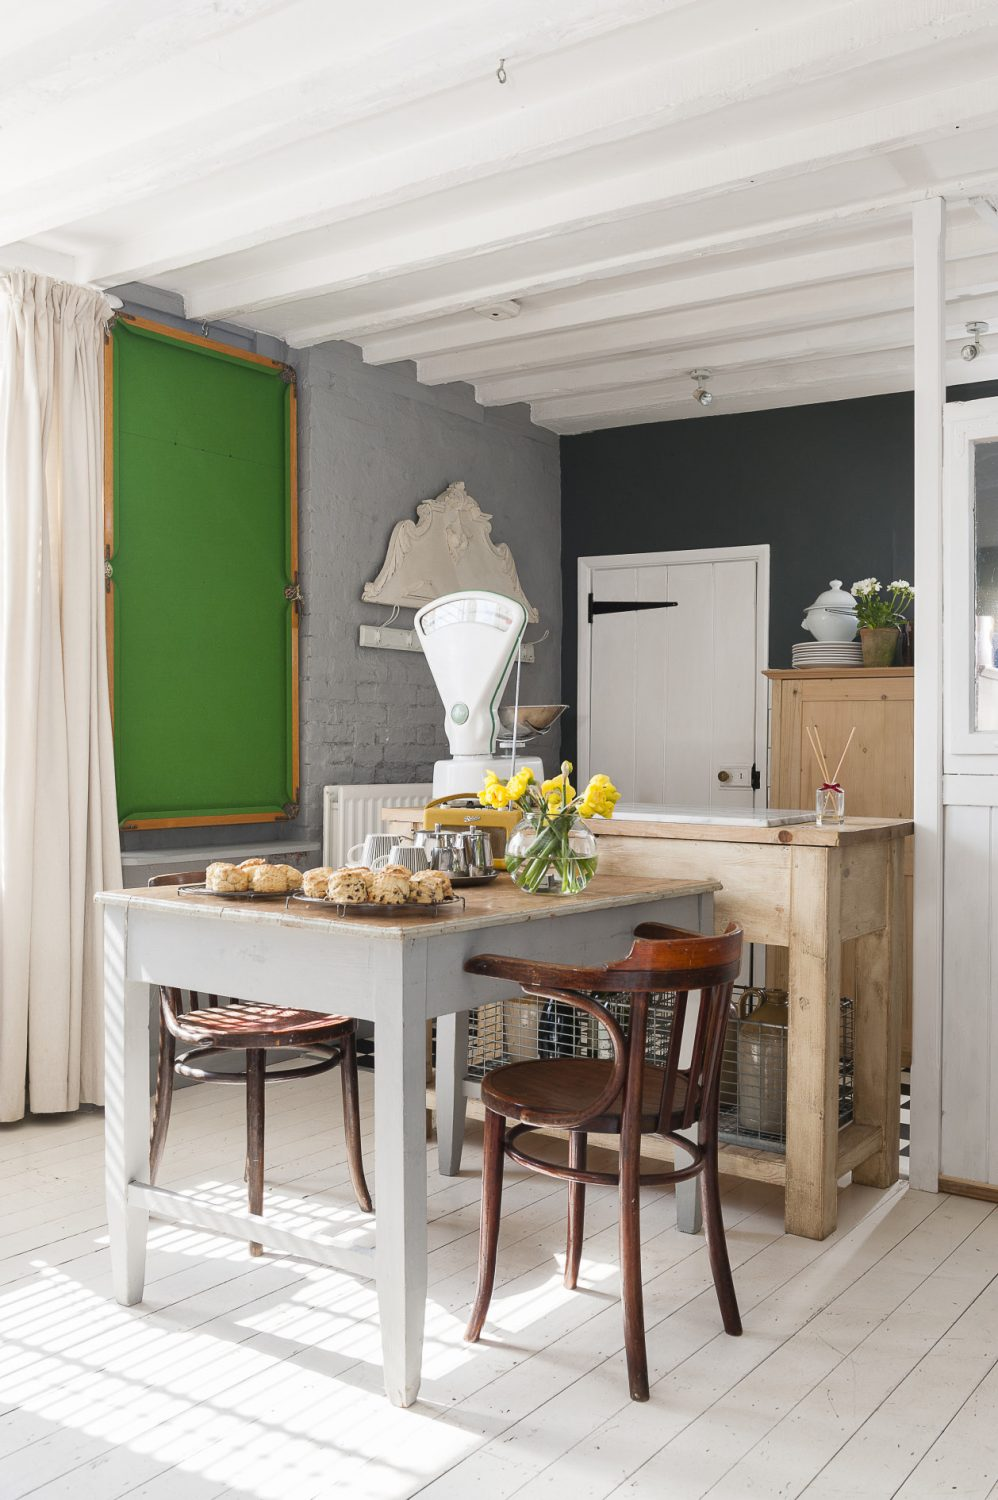 A snooker table hangs decoratively on the wall in the kitchen, bringing a splash of colour to the room, but it's also just waiting to be taken down for a game – and, by fluke, it fits perfectly on top of the dining table